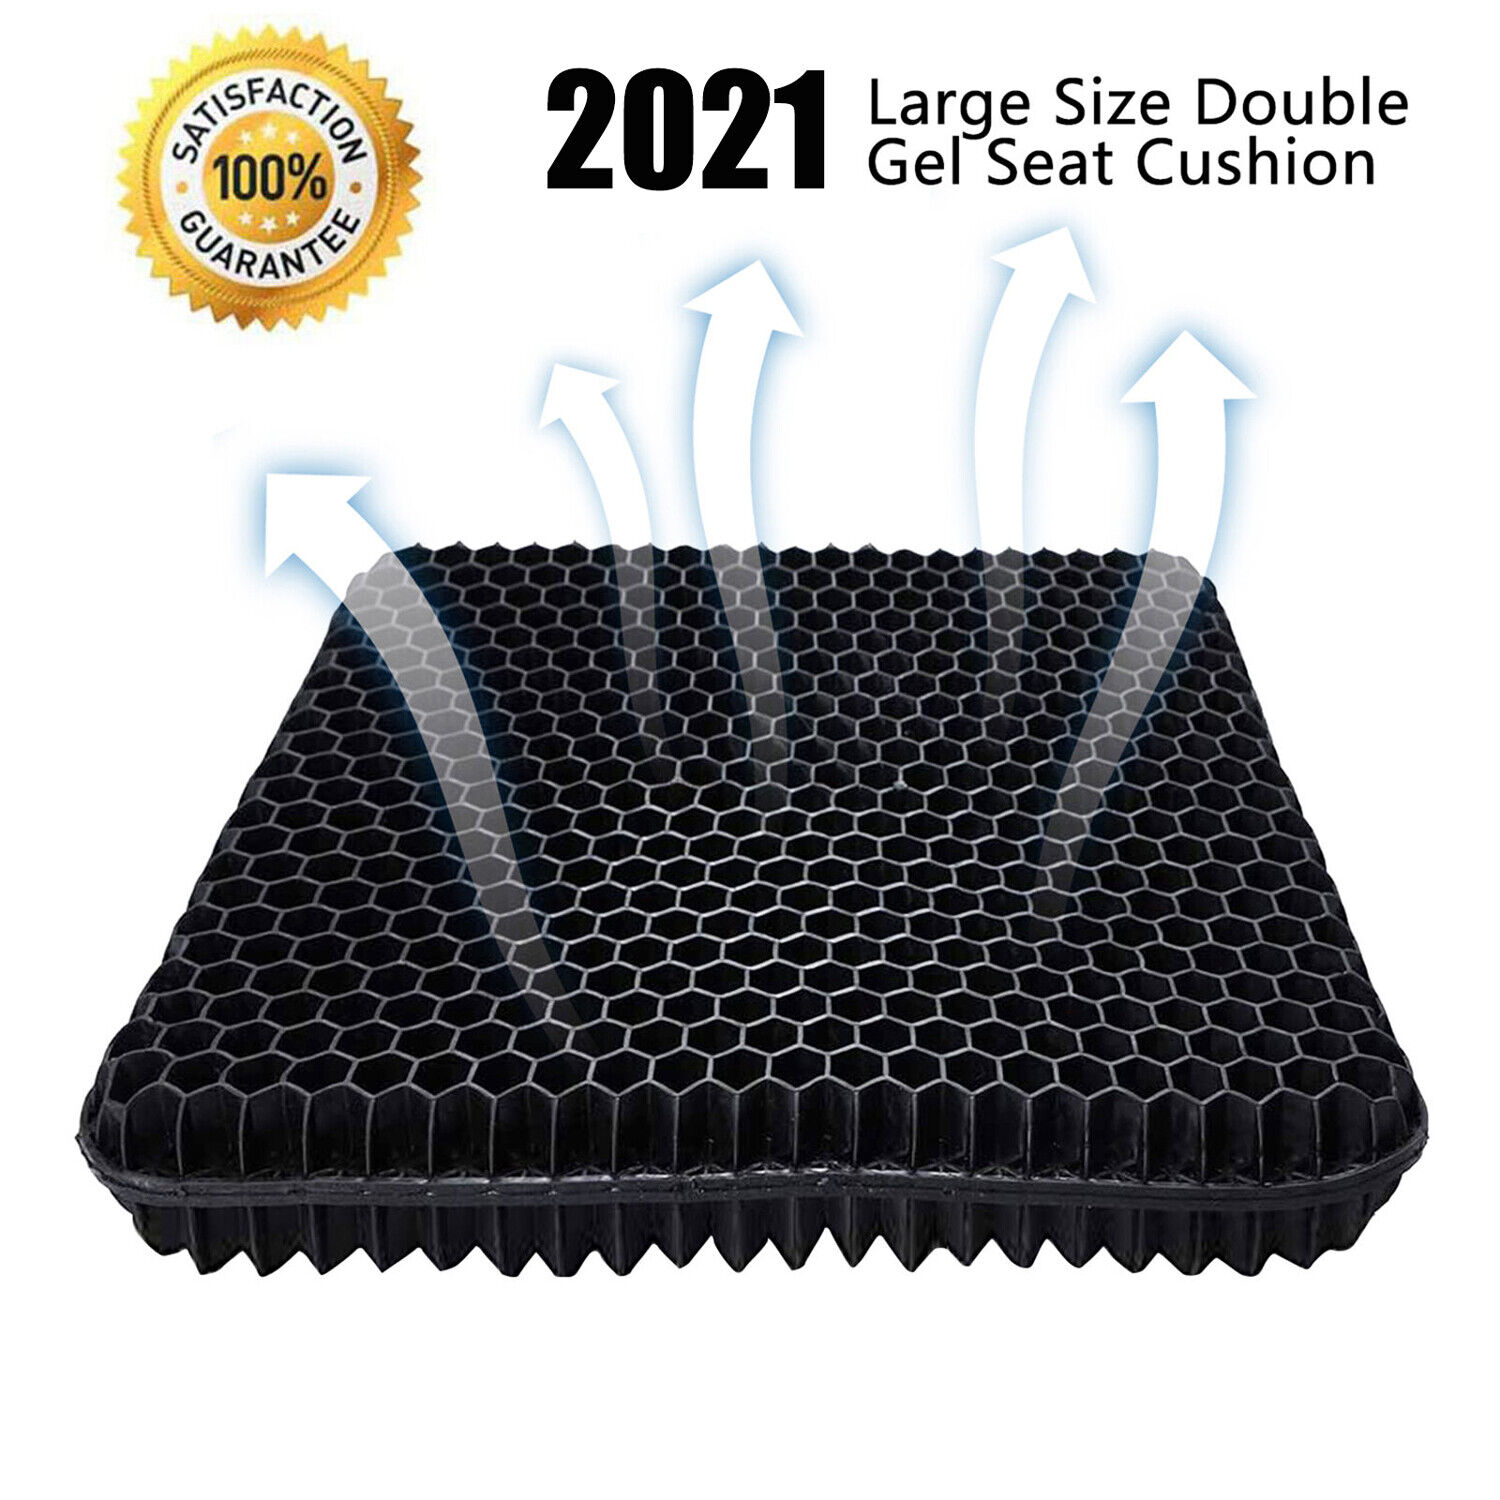 NEW GEL SEAT CUSHION DOUBLE THICK EGG SEAT CUSHION NON-SLIP COVER BREATHABLE DESIGN